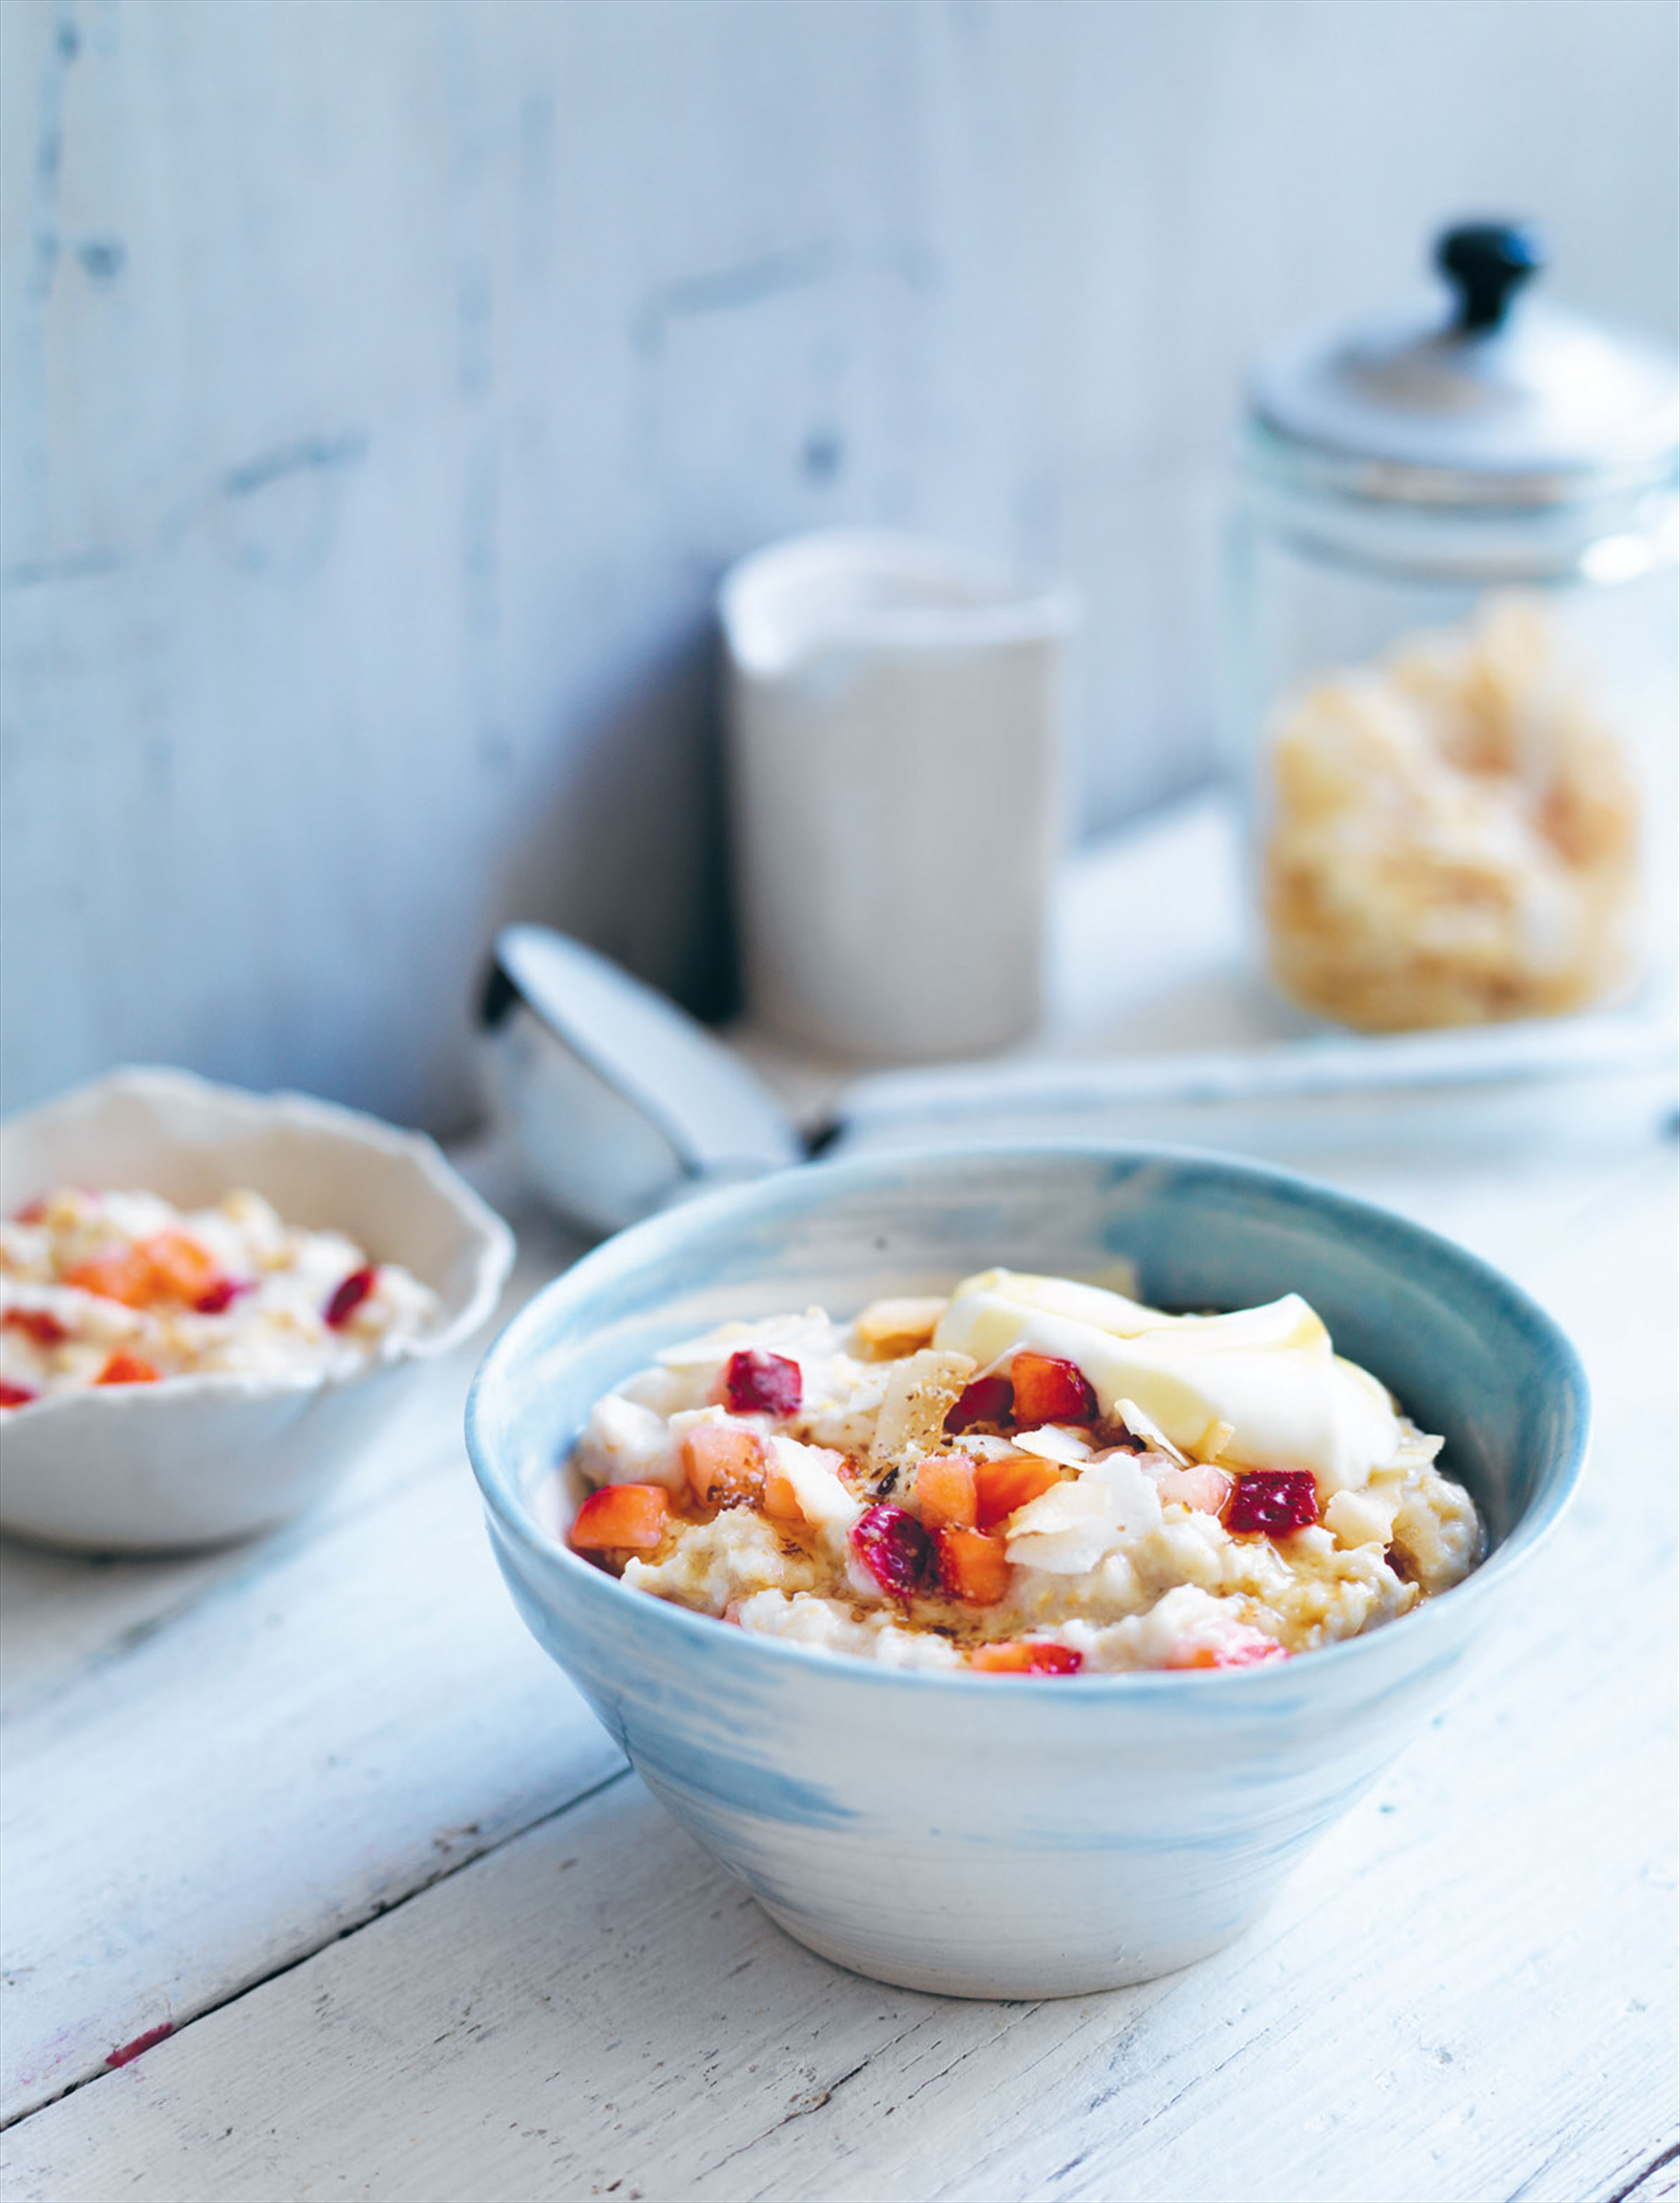 Strawberry coconut porridge